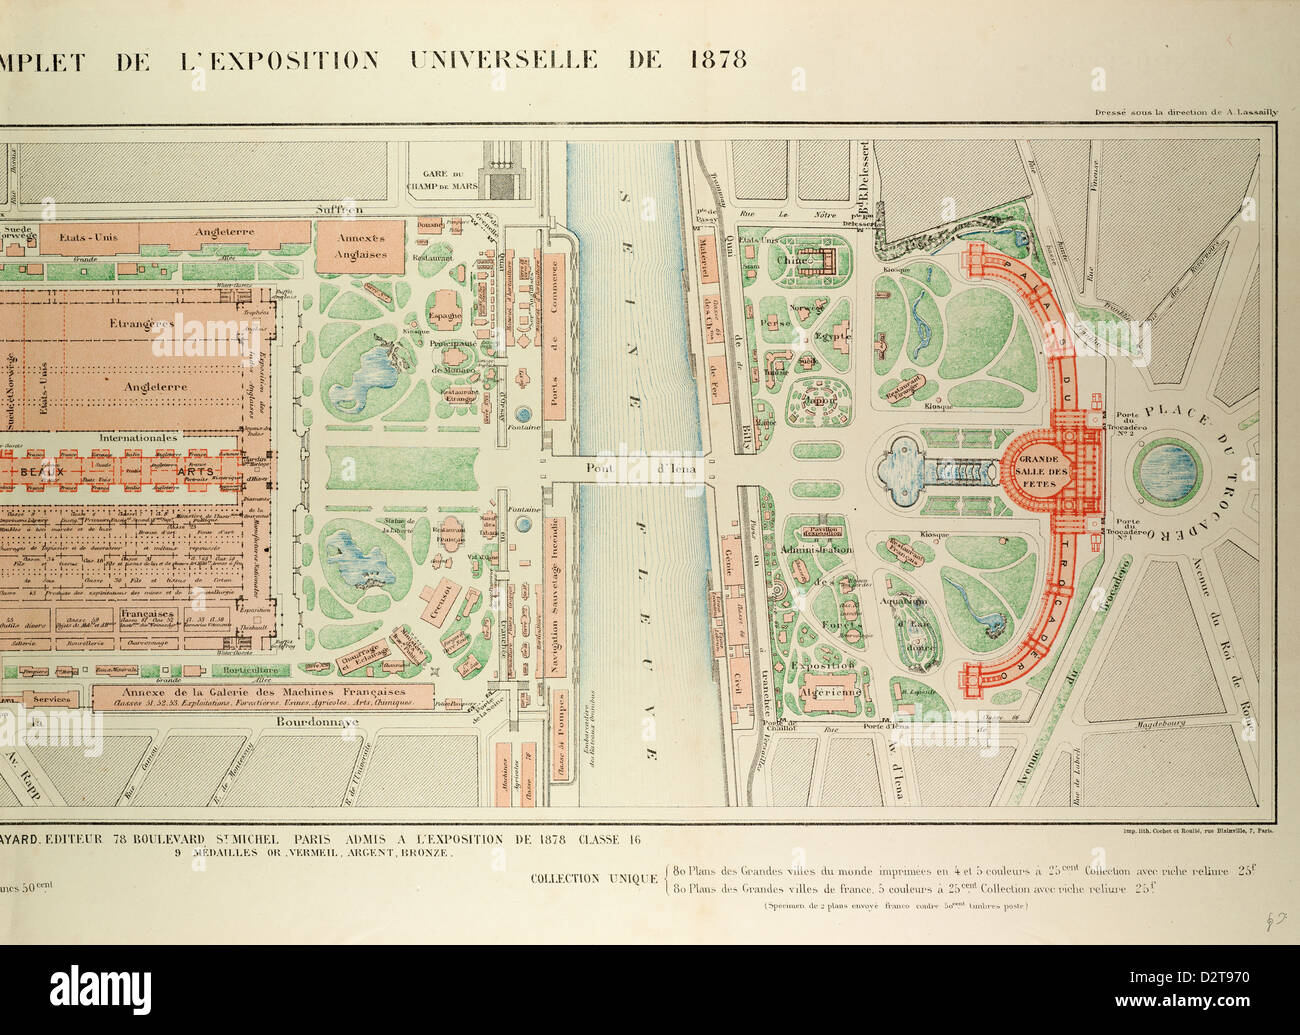 MAP OF THE UNIVERSAL EXPOSITION OF 1878 PARIS - Stock Image